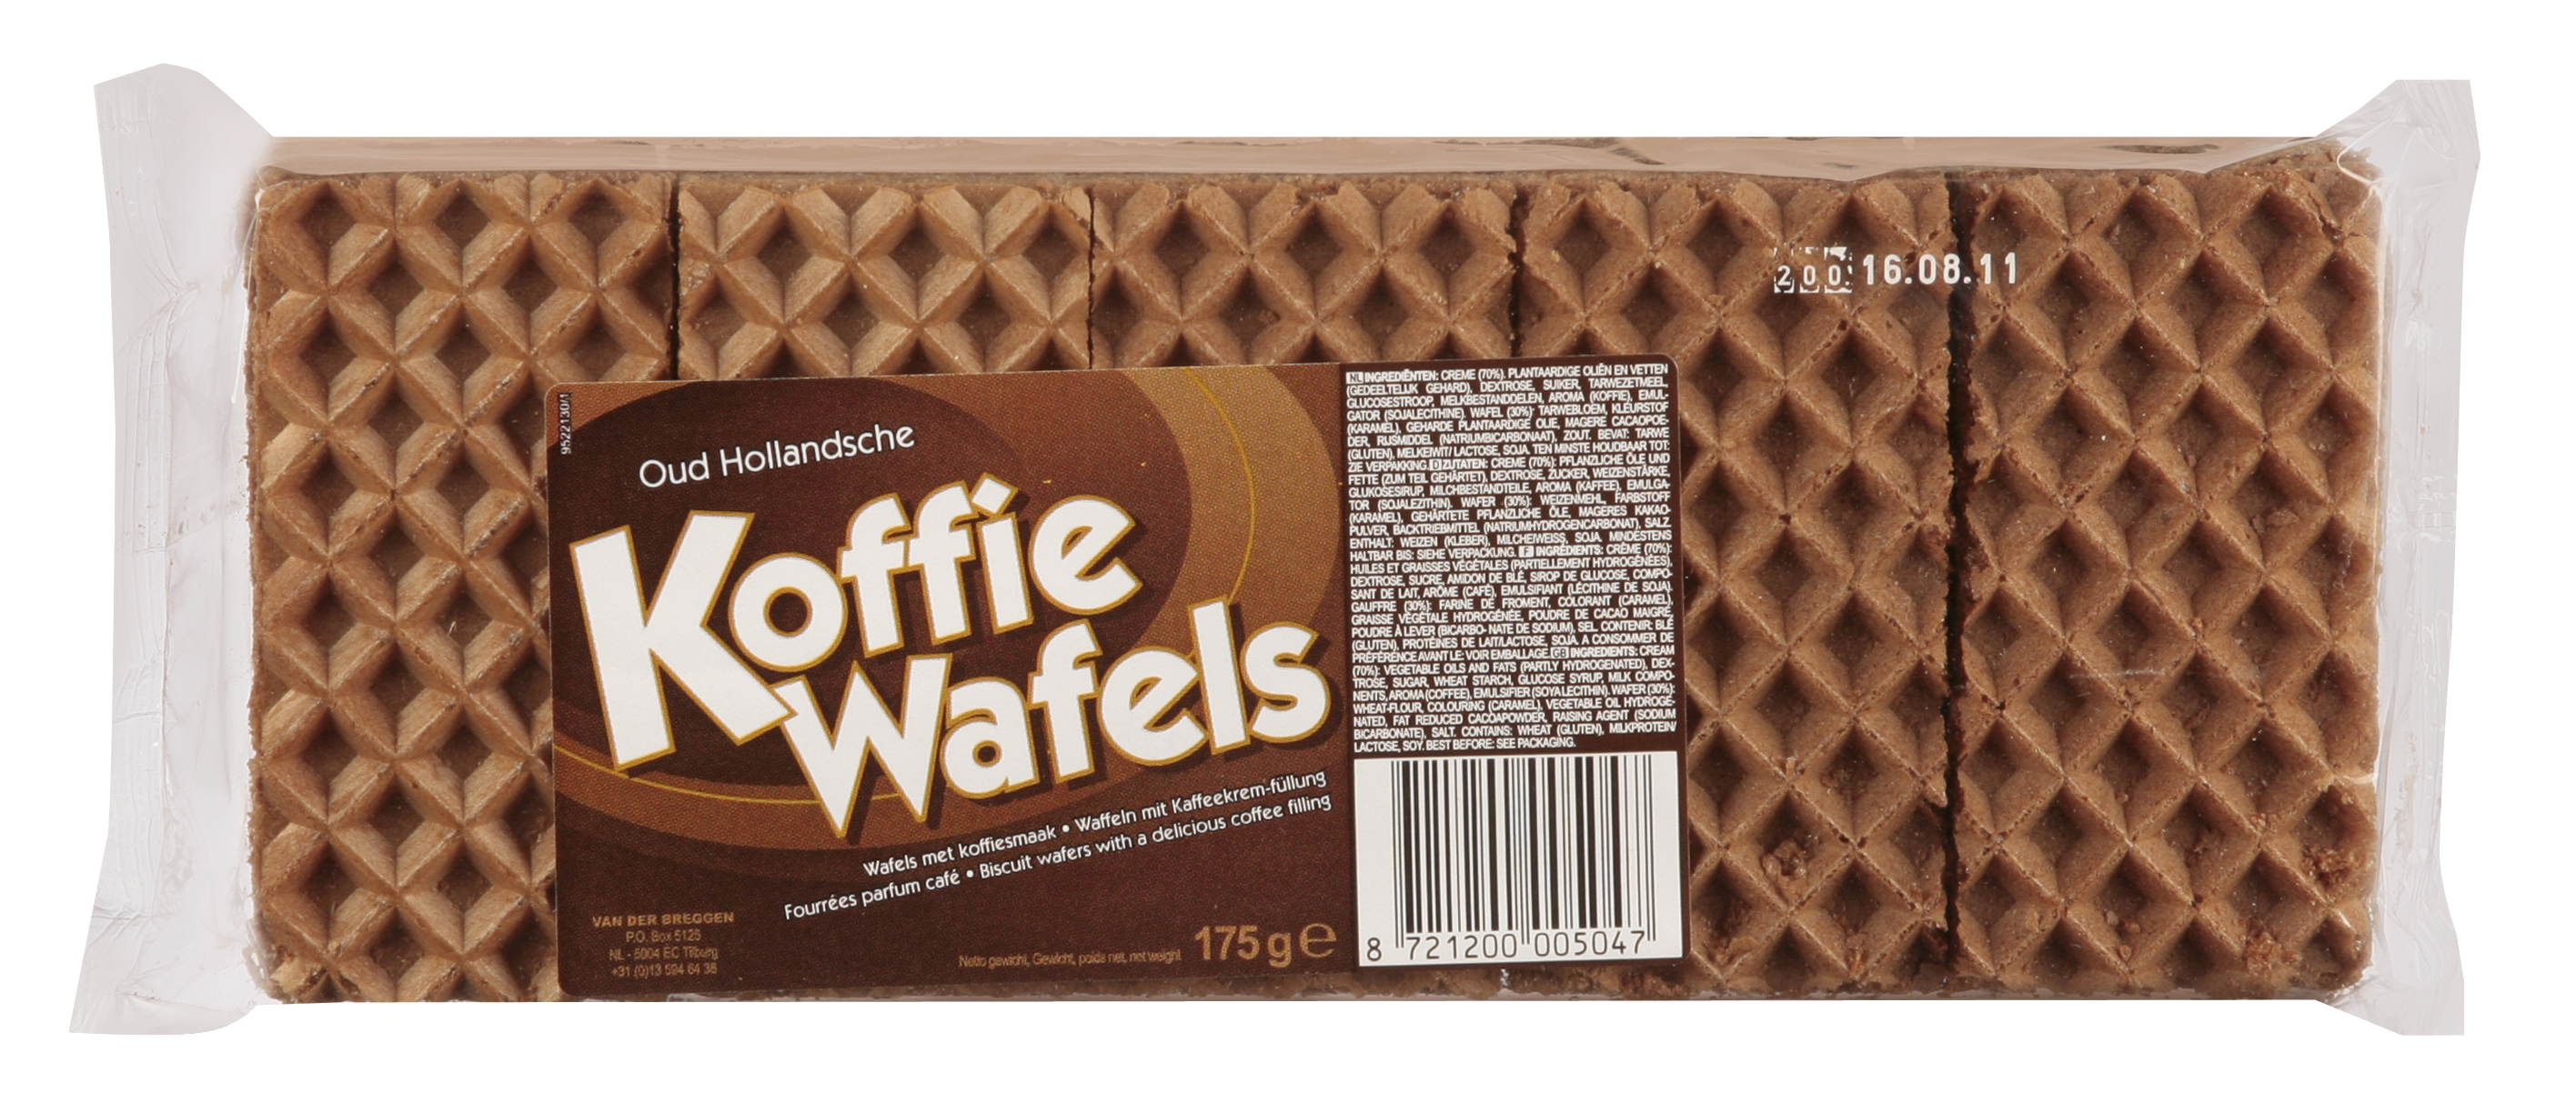 Coffee Wafers